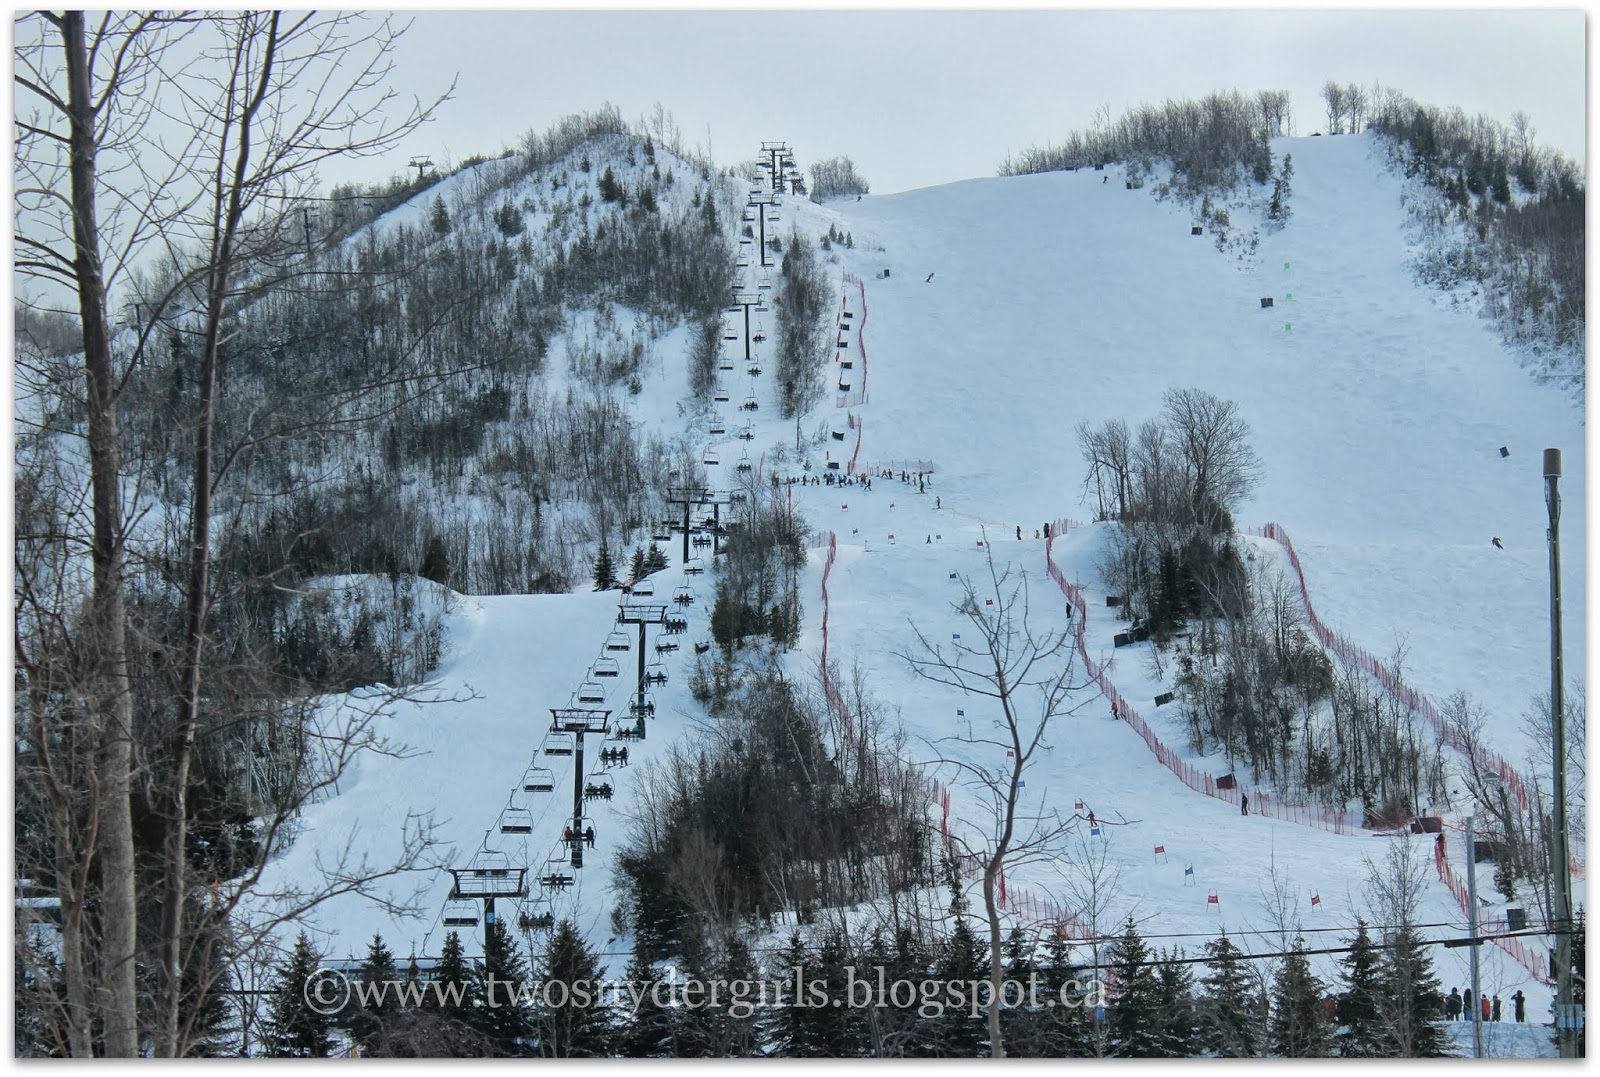 Blue Mountain Ski Hill, Collingwood Ontario